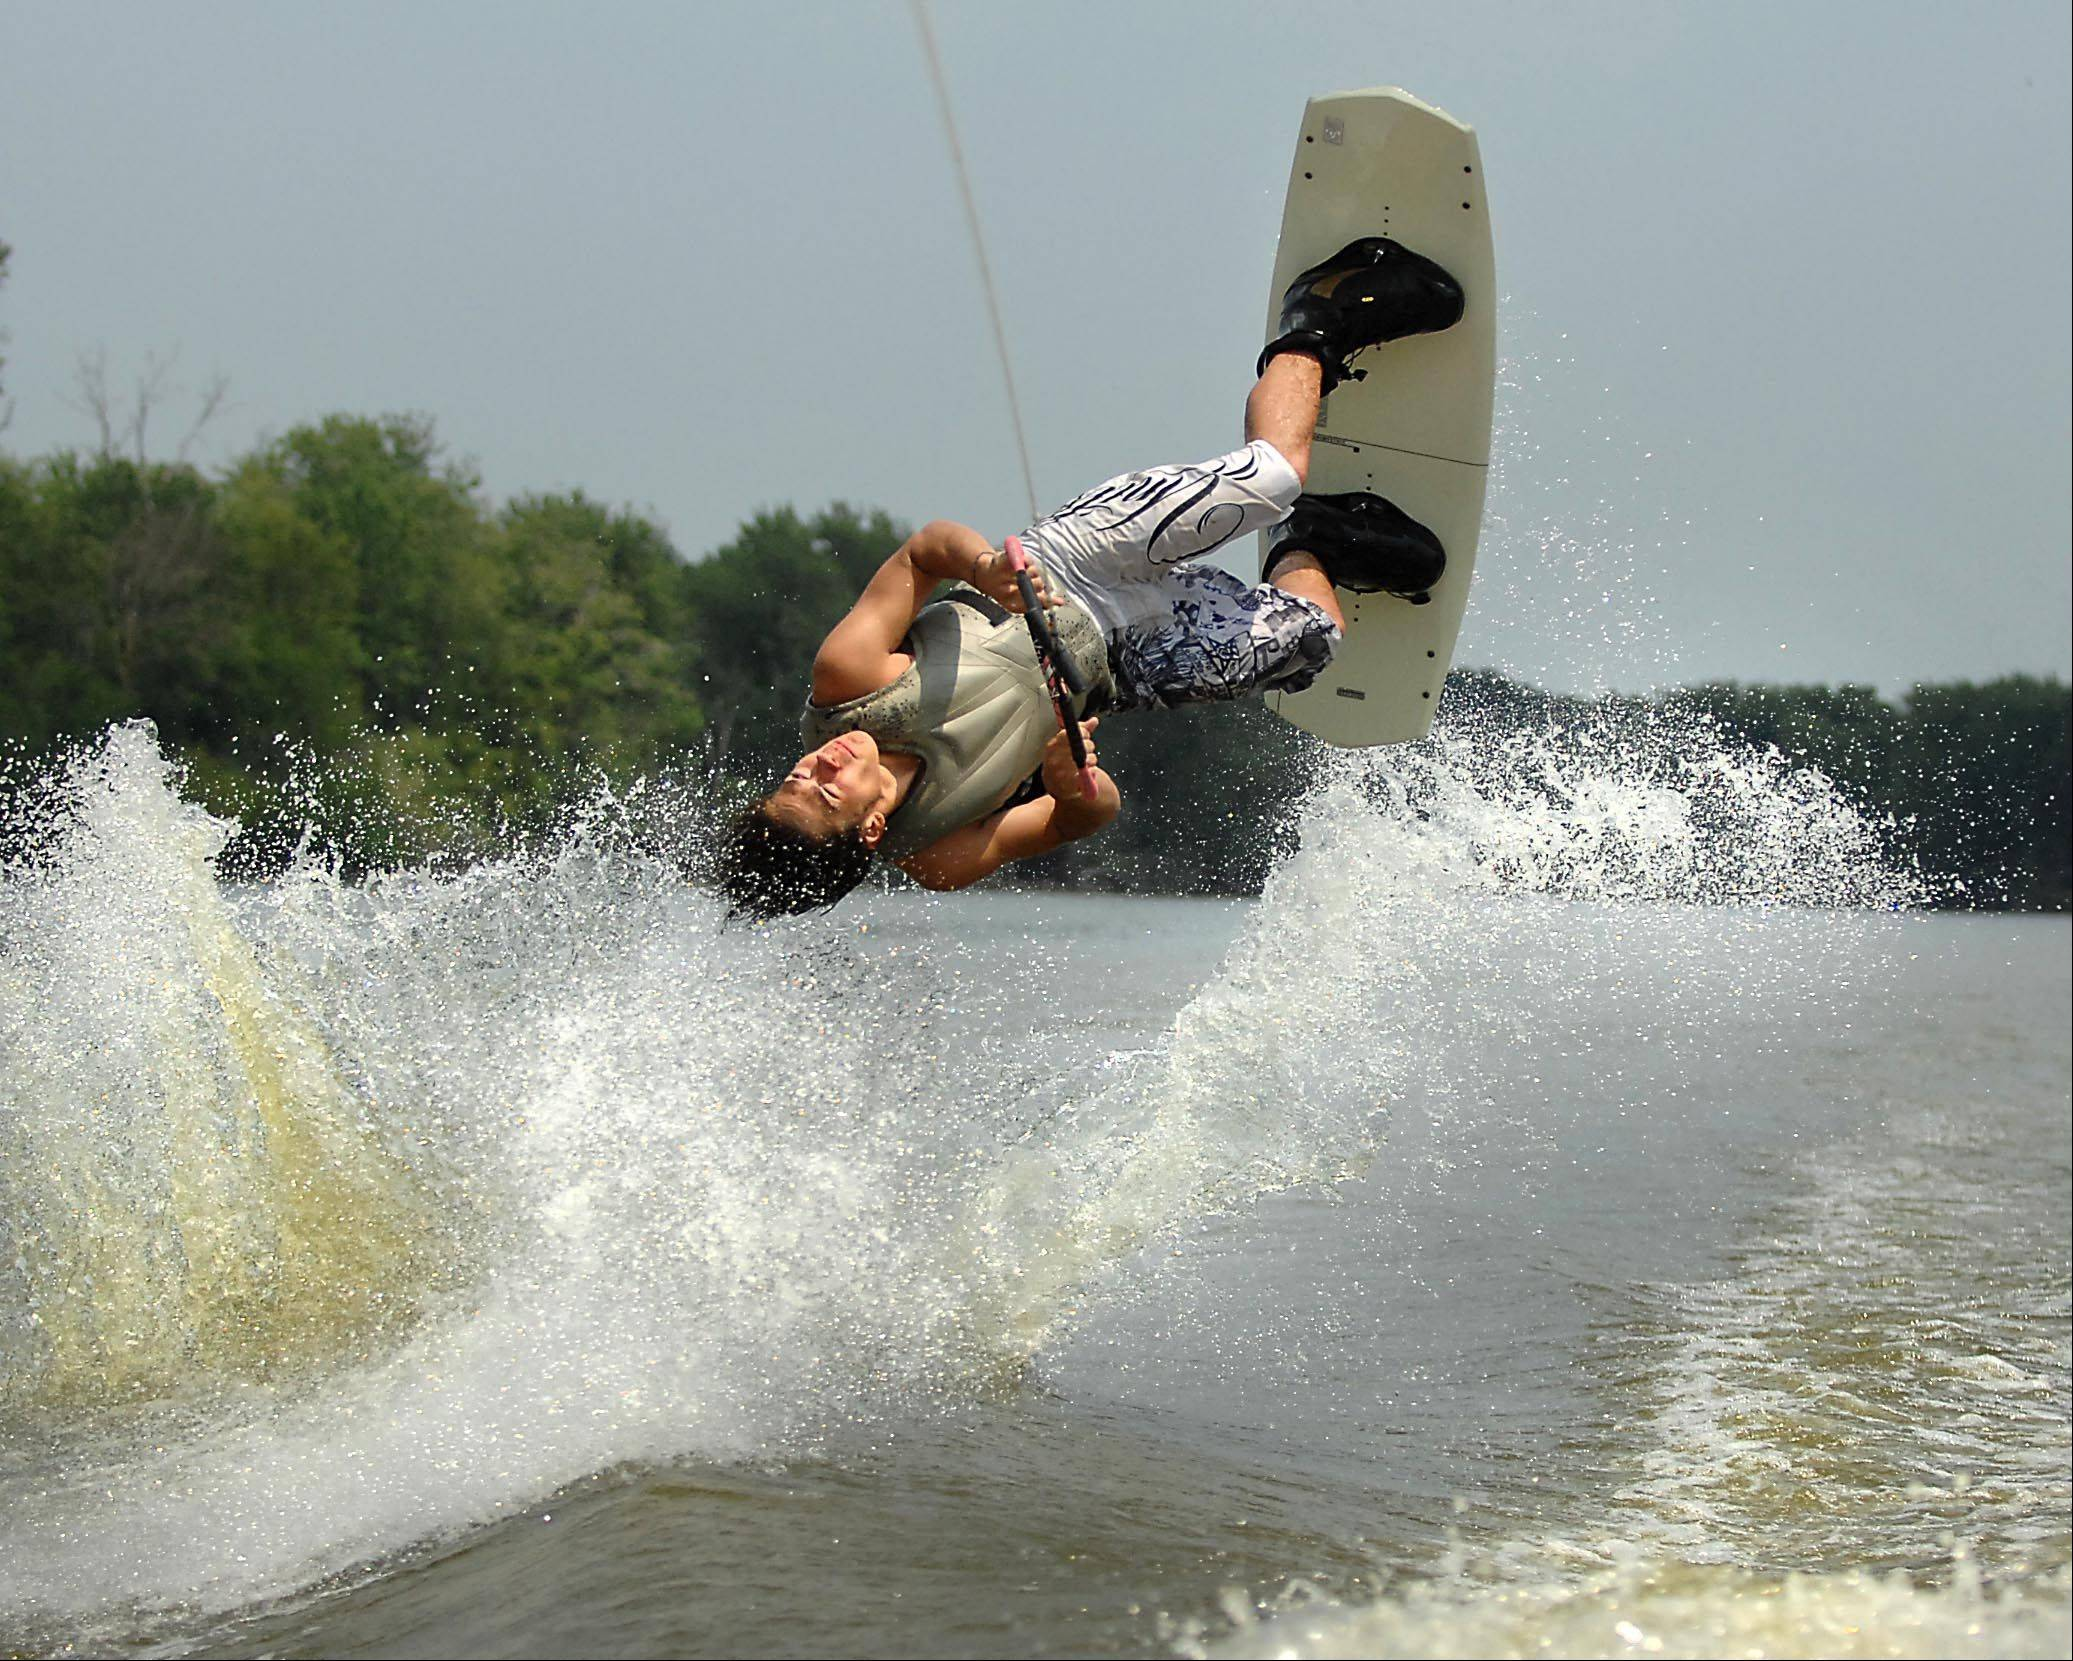 Xavier Contreras, 17, of Port Barrington, performs a roll as Keith Duck, owner of Raging Buffalo Wakeboard School, drives the boat on the Fox River near Cary Monday.